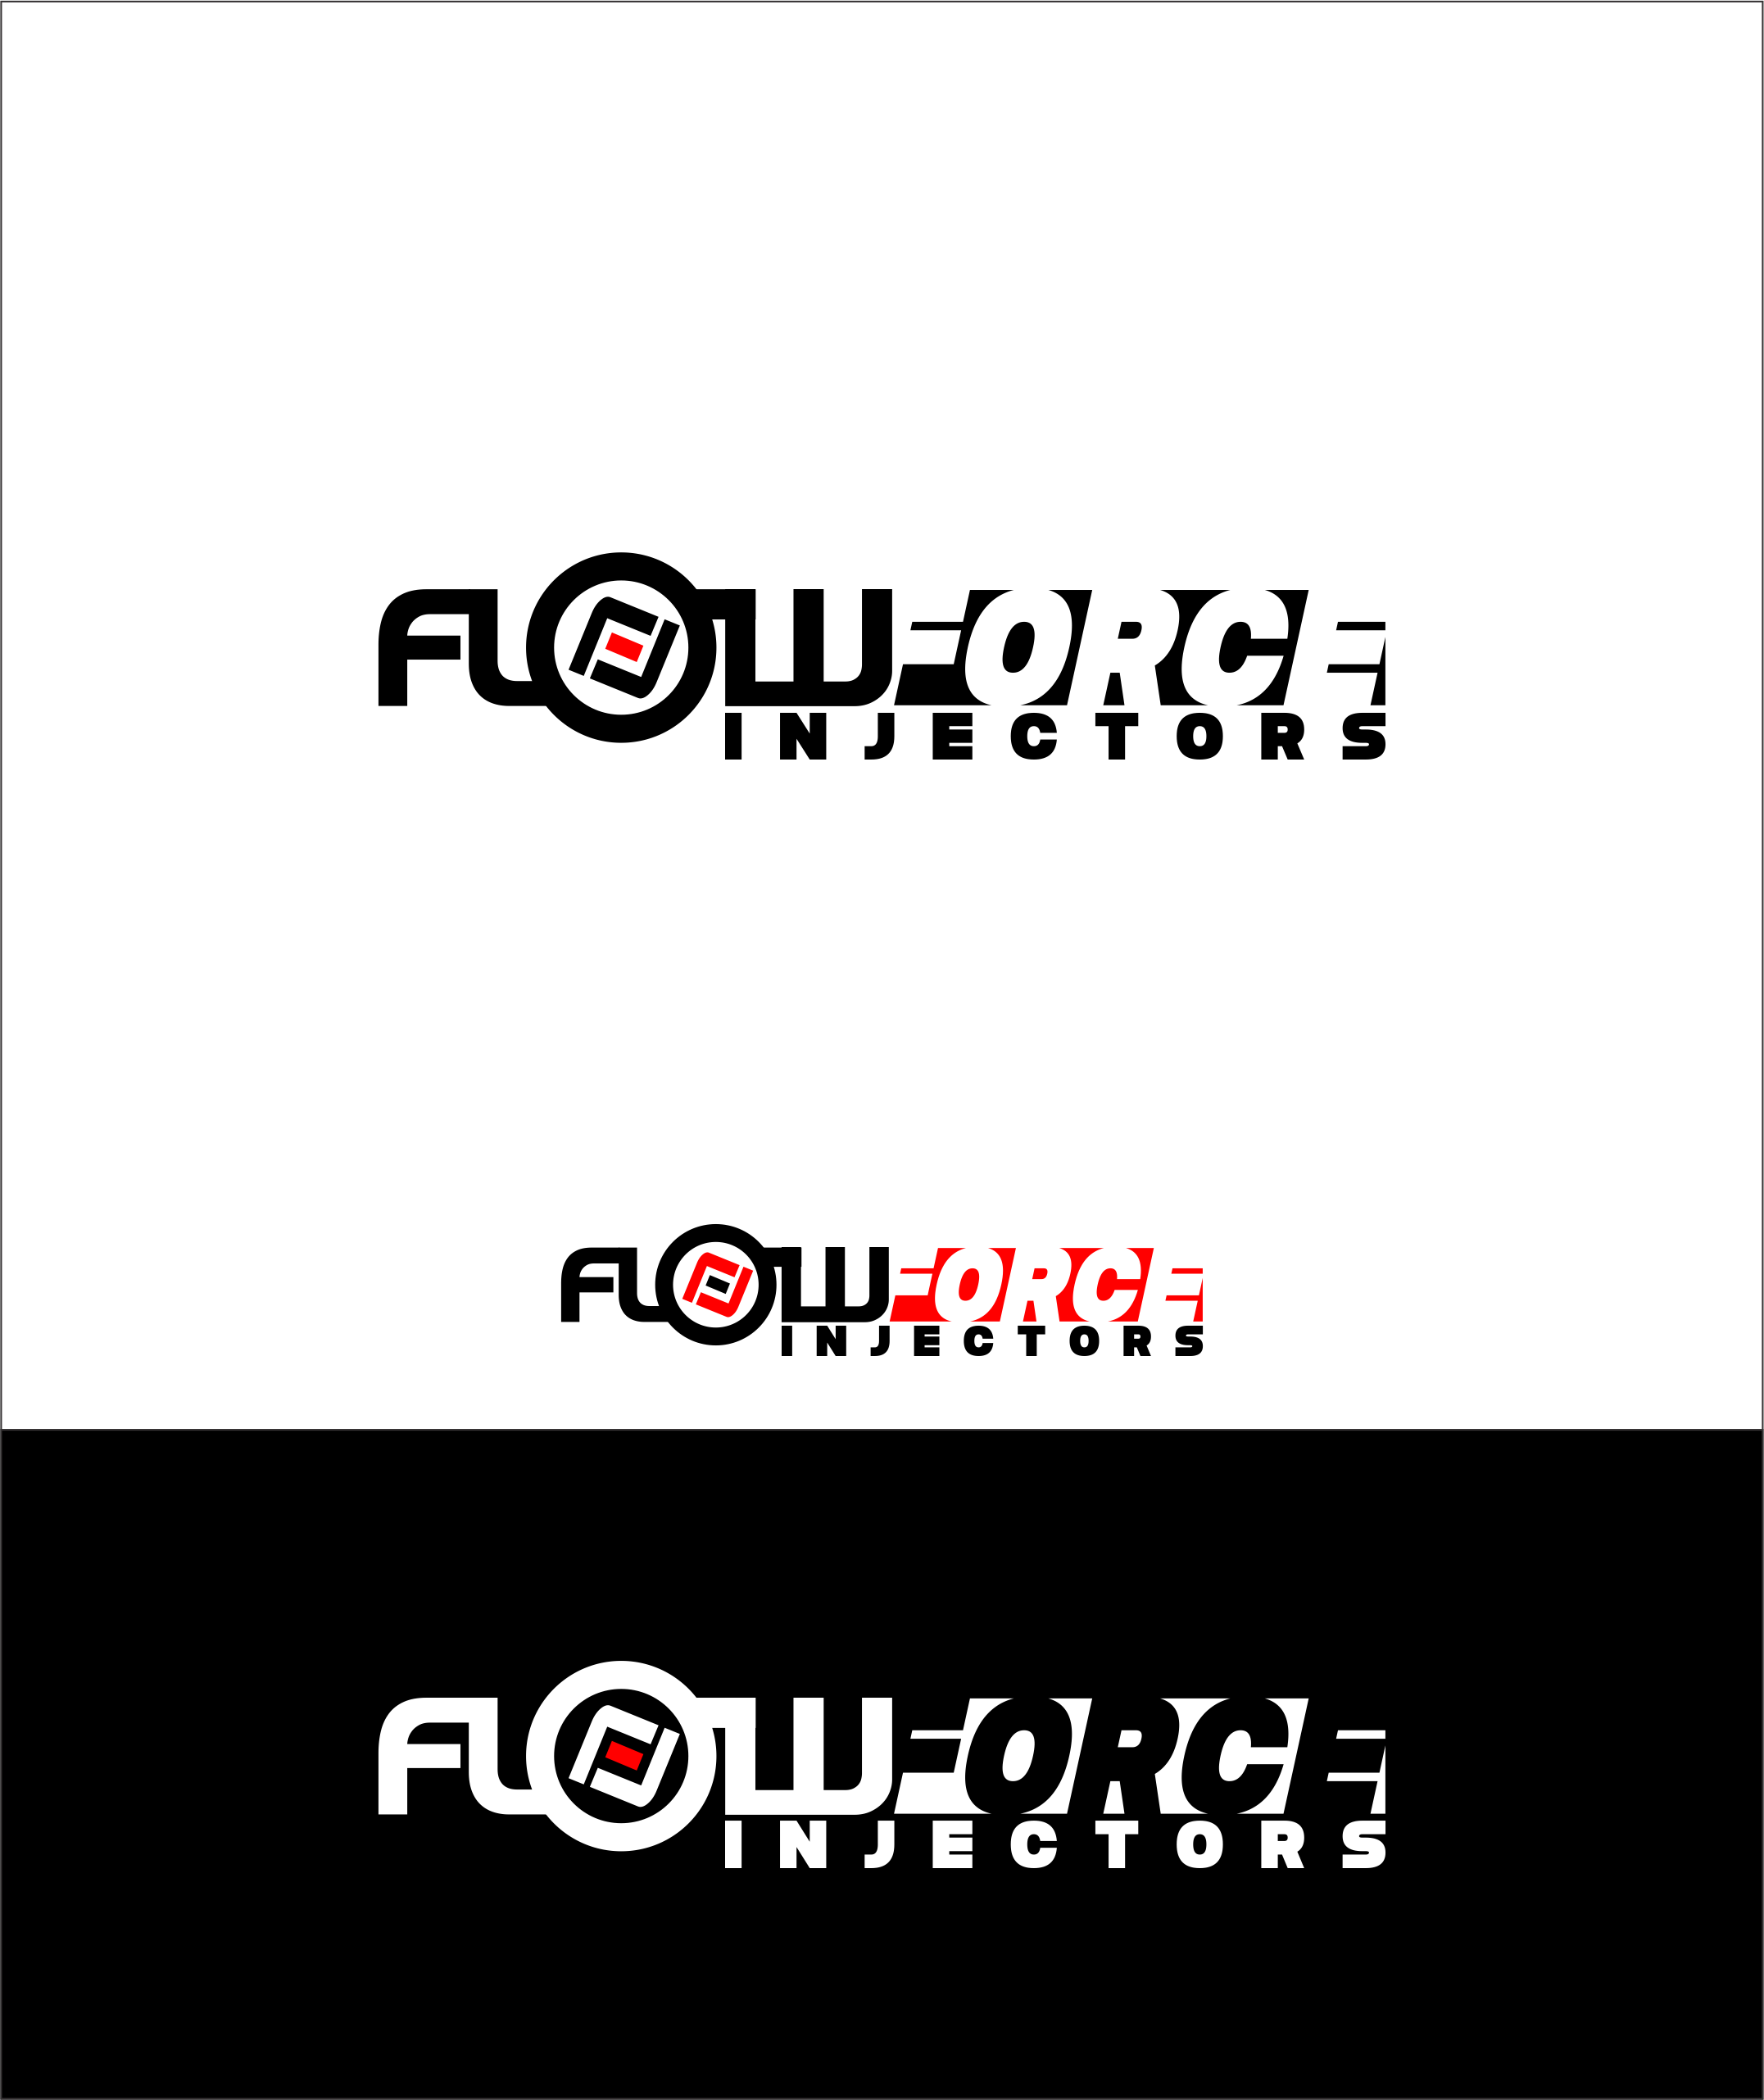 Logo Design by snow - Entry No. 177 in the Logo Design Contest Fun Logo Design for Flow Force Injectors.